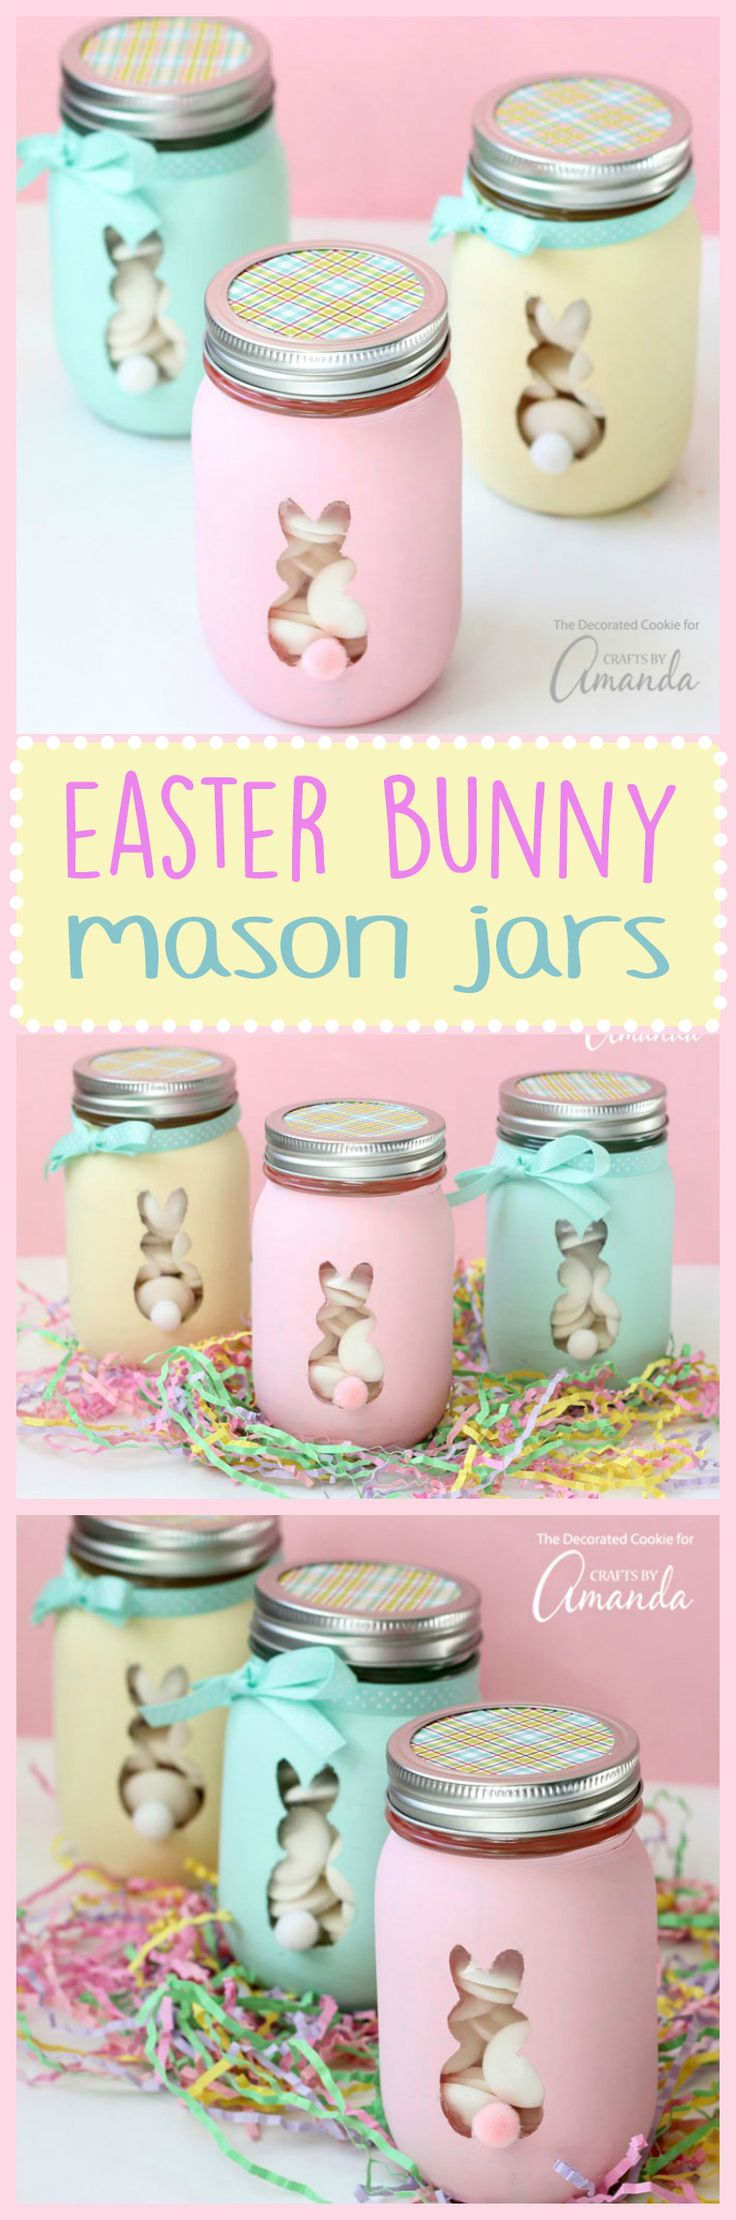 These Easter Bunny Mason Jars are perfect to fill with candy or votive candles and use them for Easter decor or as Easter gifts!